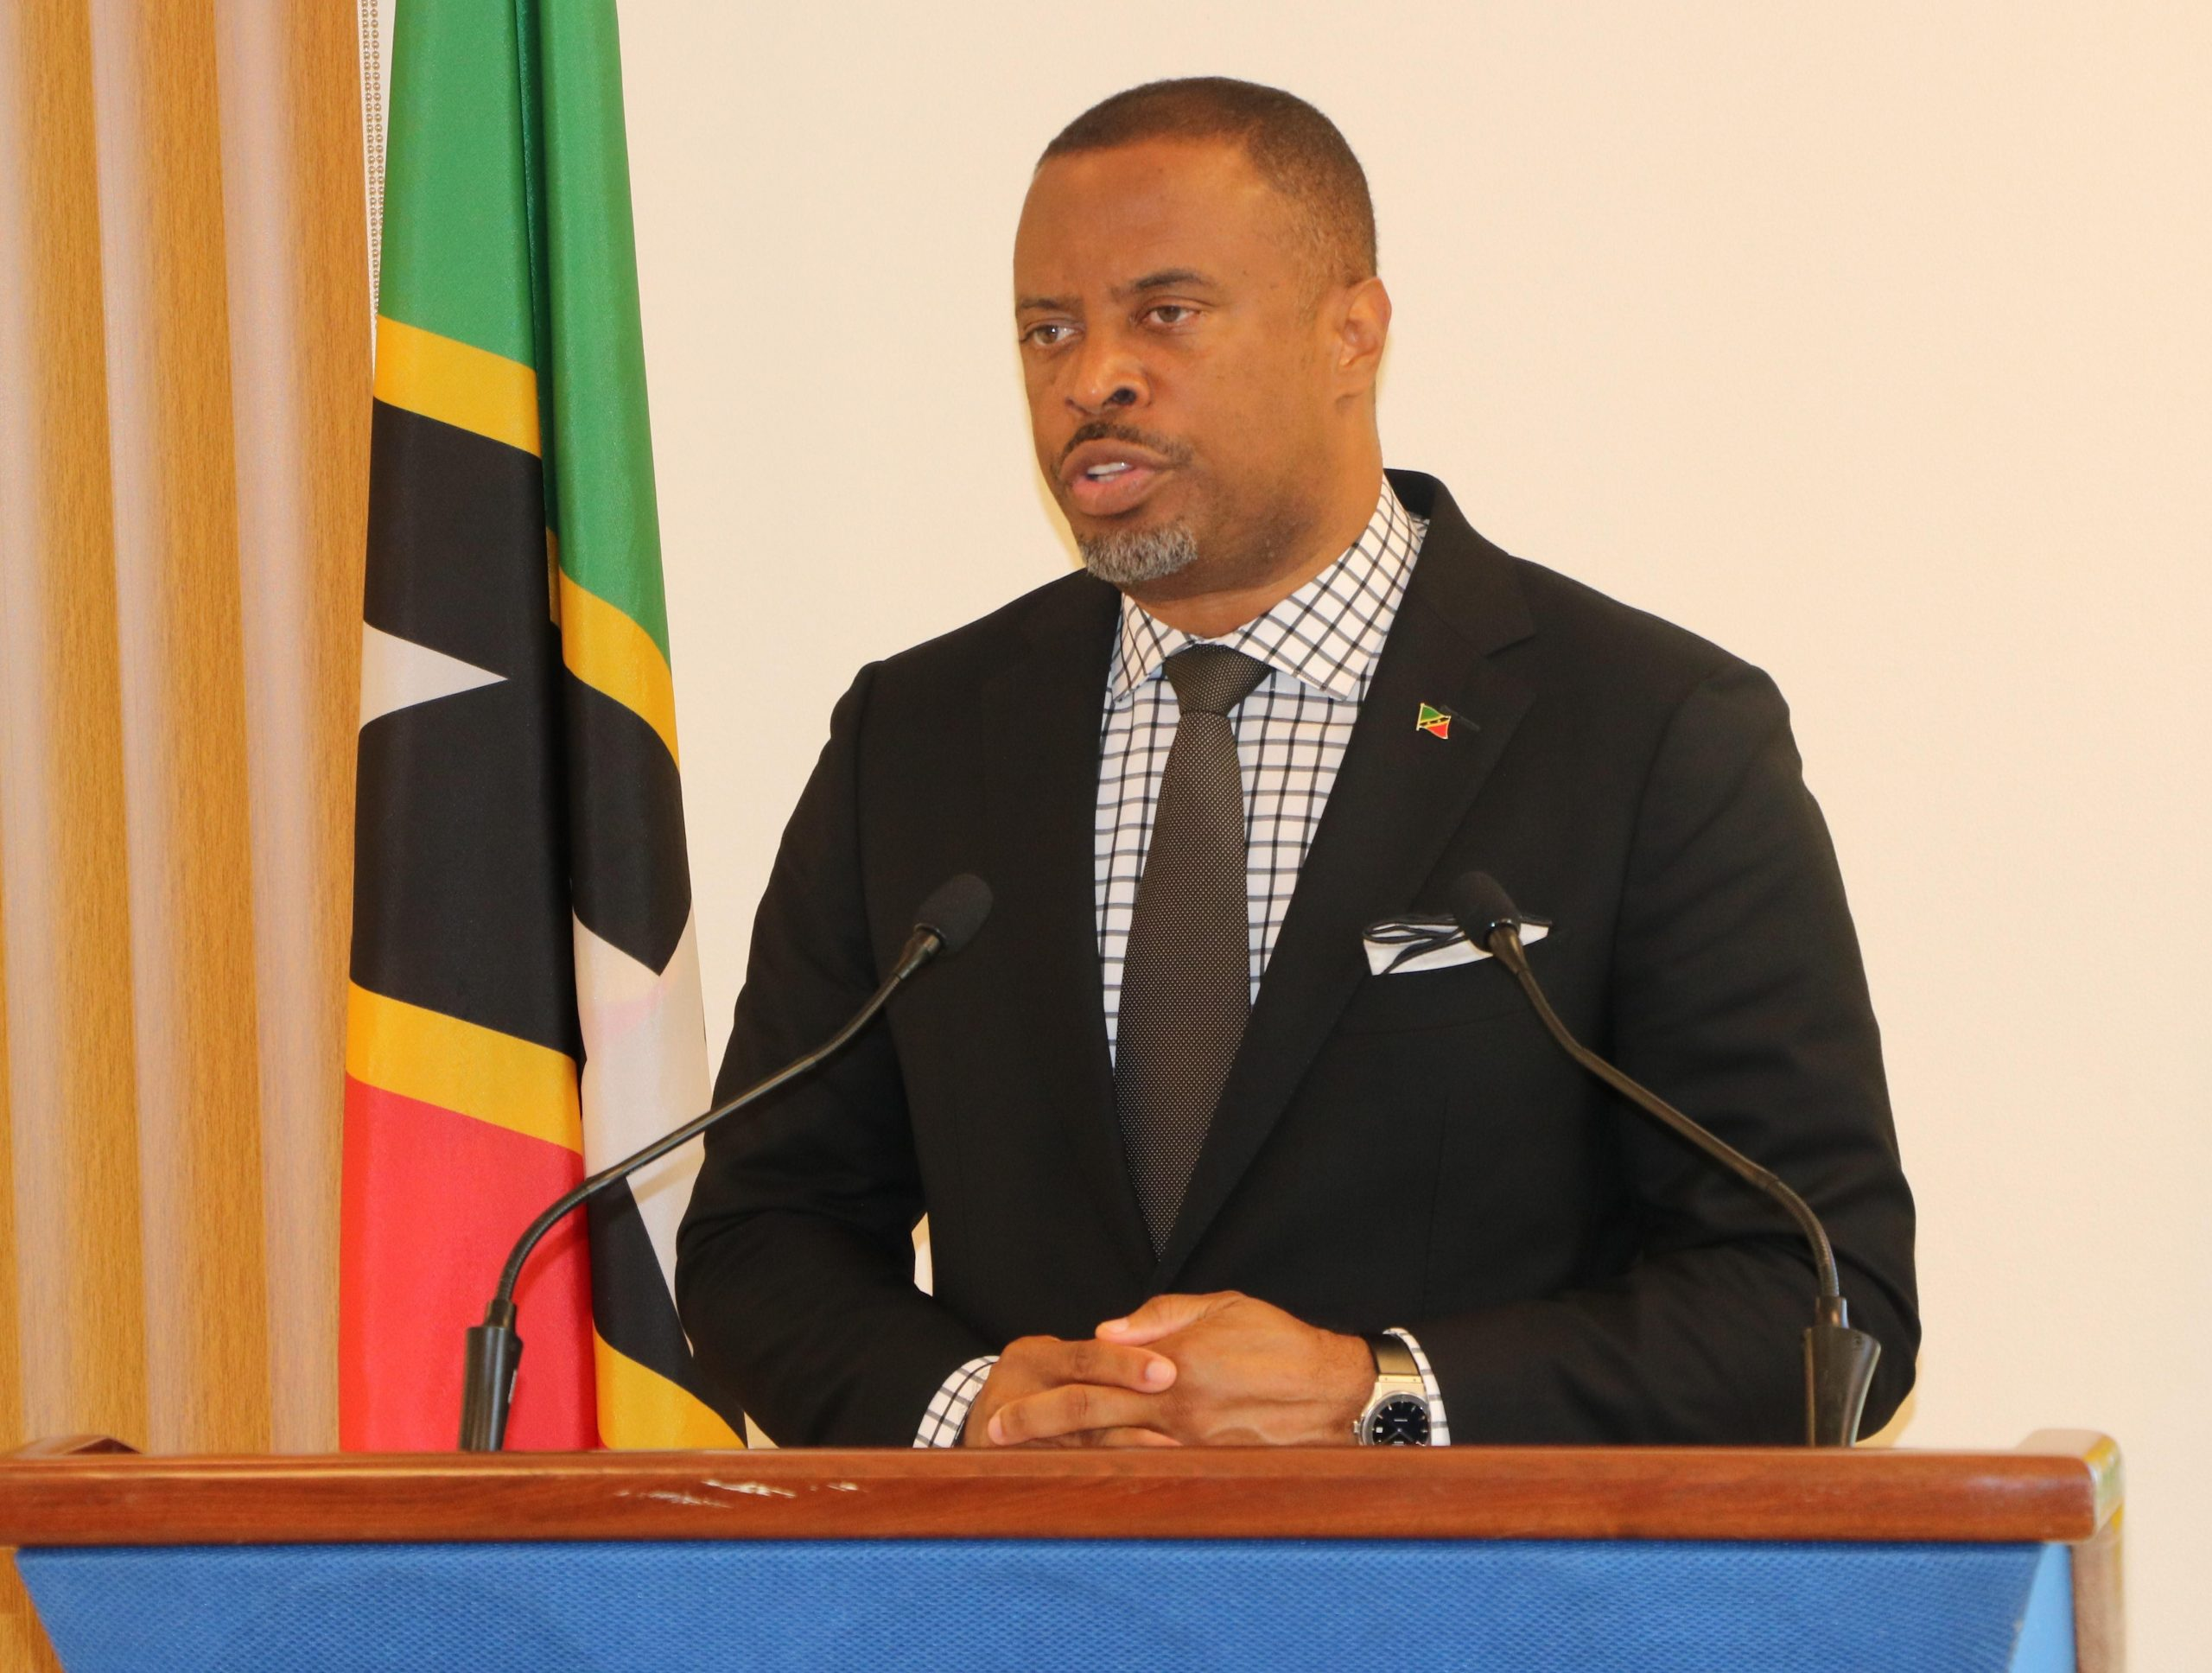 Hon. Mark Brantley, Premier of Nevis and Minister of Energy in the Nevis Island Administration at his monthly press conference in Cabinet Room at Pinney's Estate on November 26, 2020